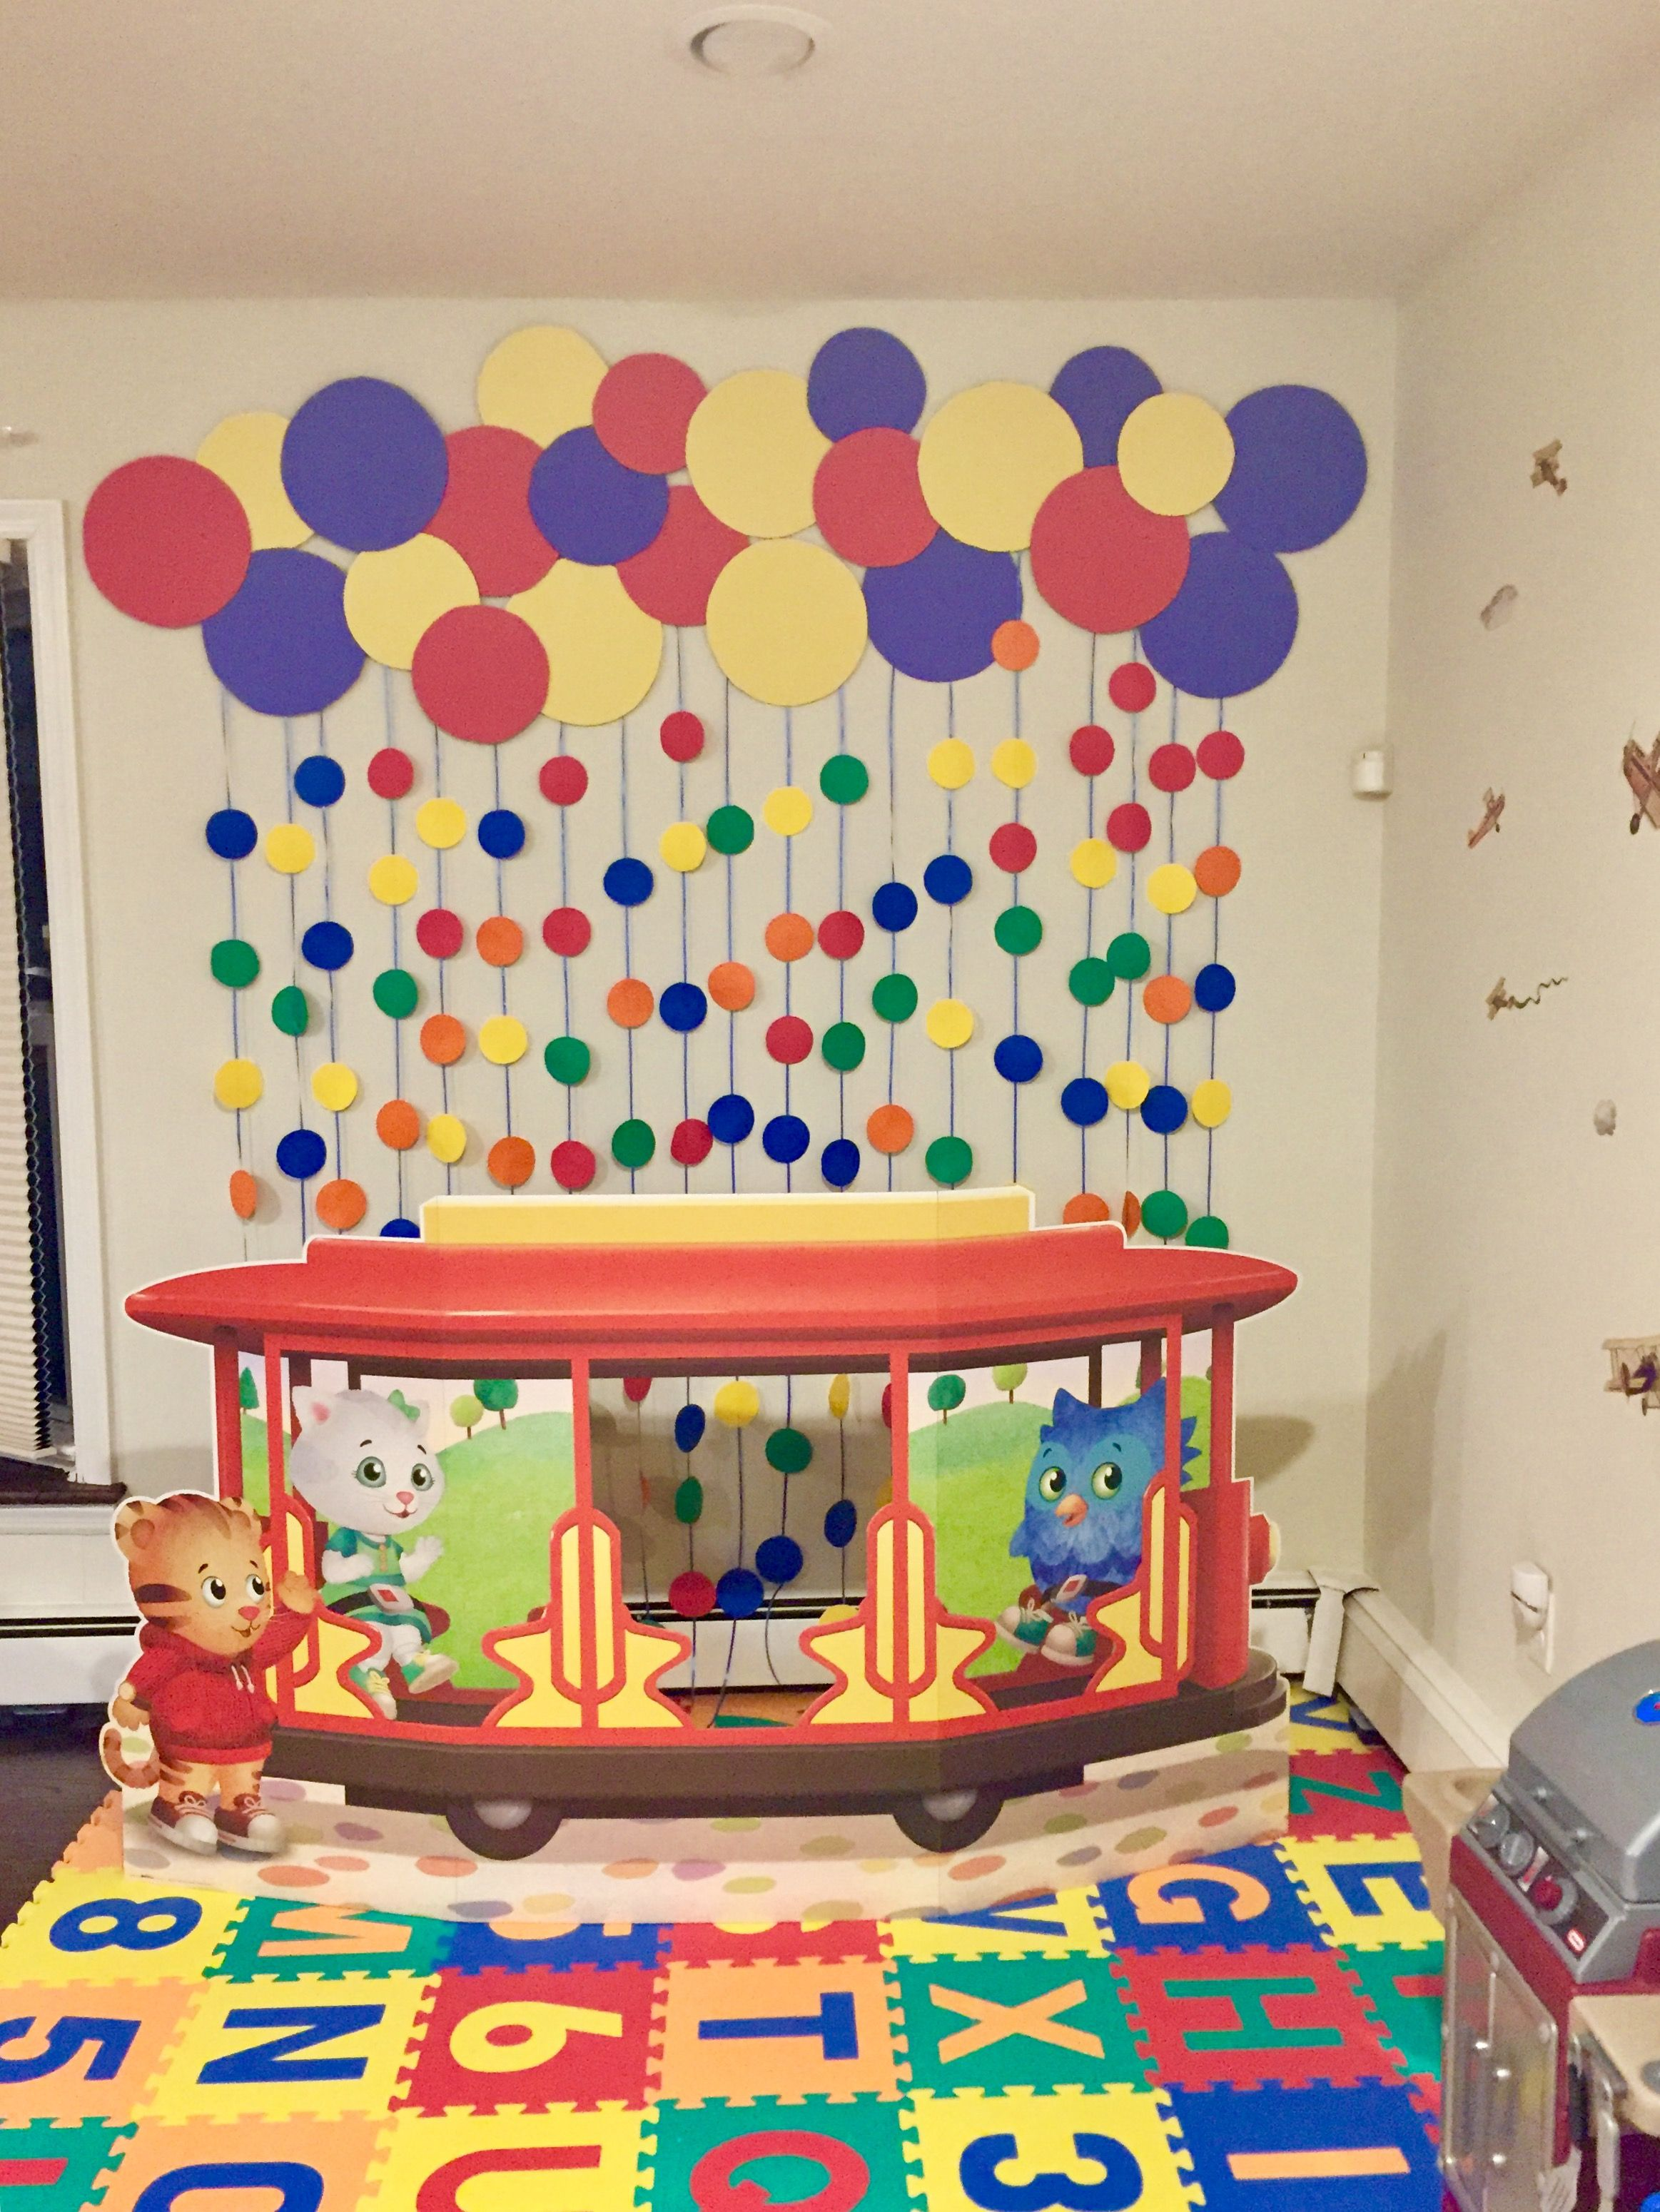 Daniel Tiger Trolley Diy Backdrop From Cardboard Circles And Construction Paper Glued Over Each Daniel Tiger Birthday Tiger Birthday Party Daniel Tiger Party